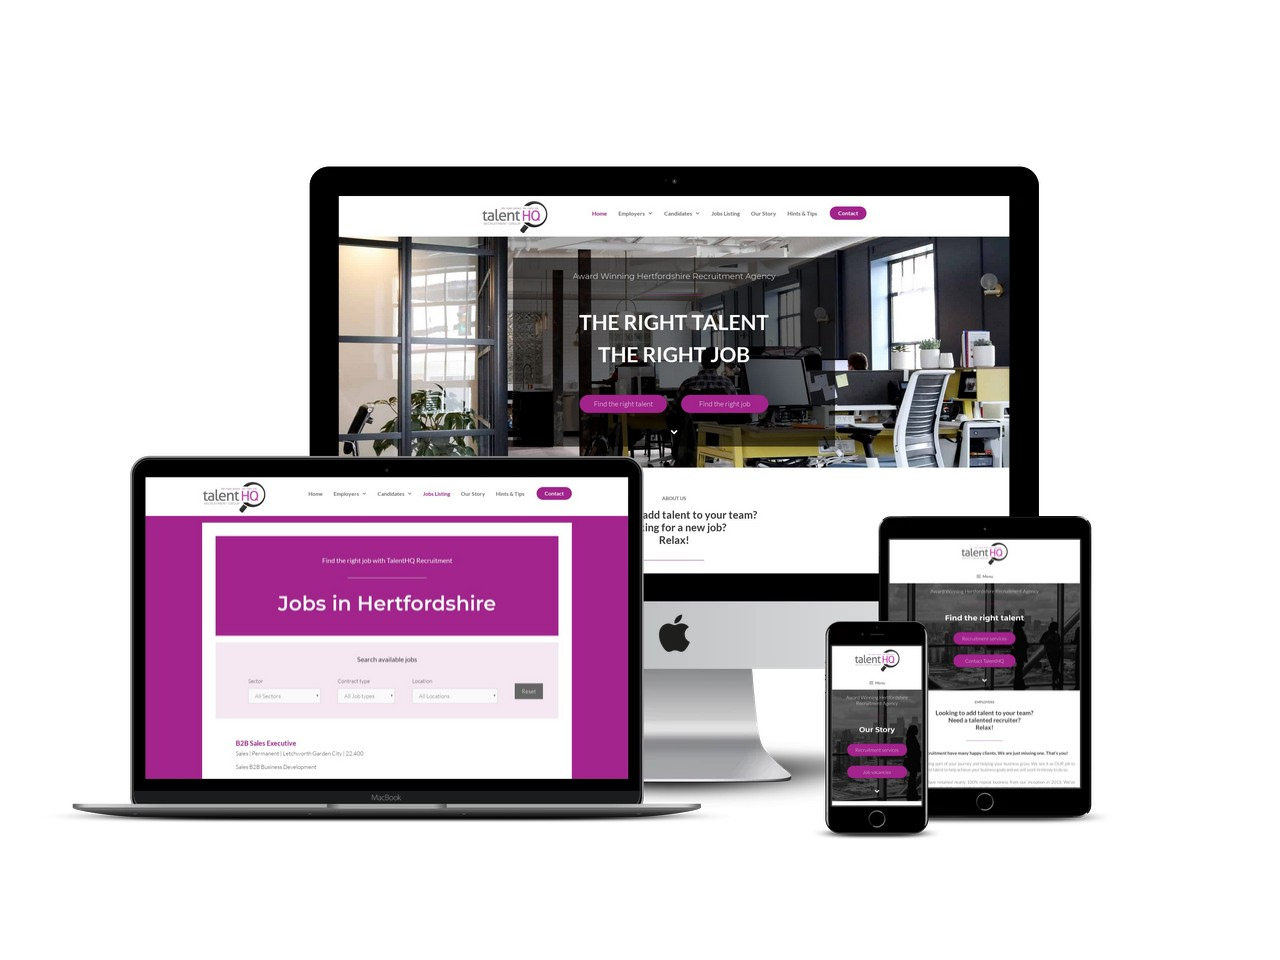 Recruitment agency website design Hertfordshire